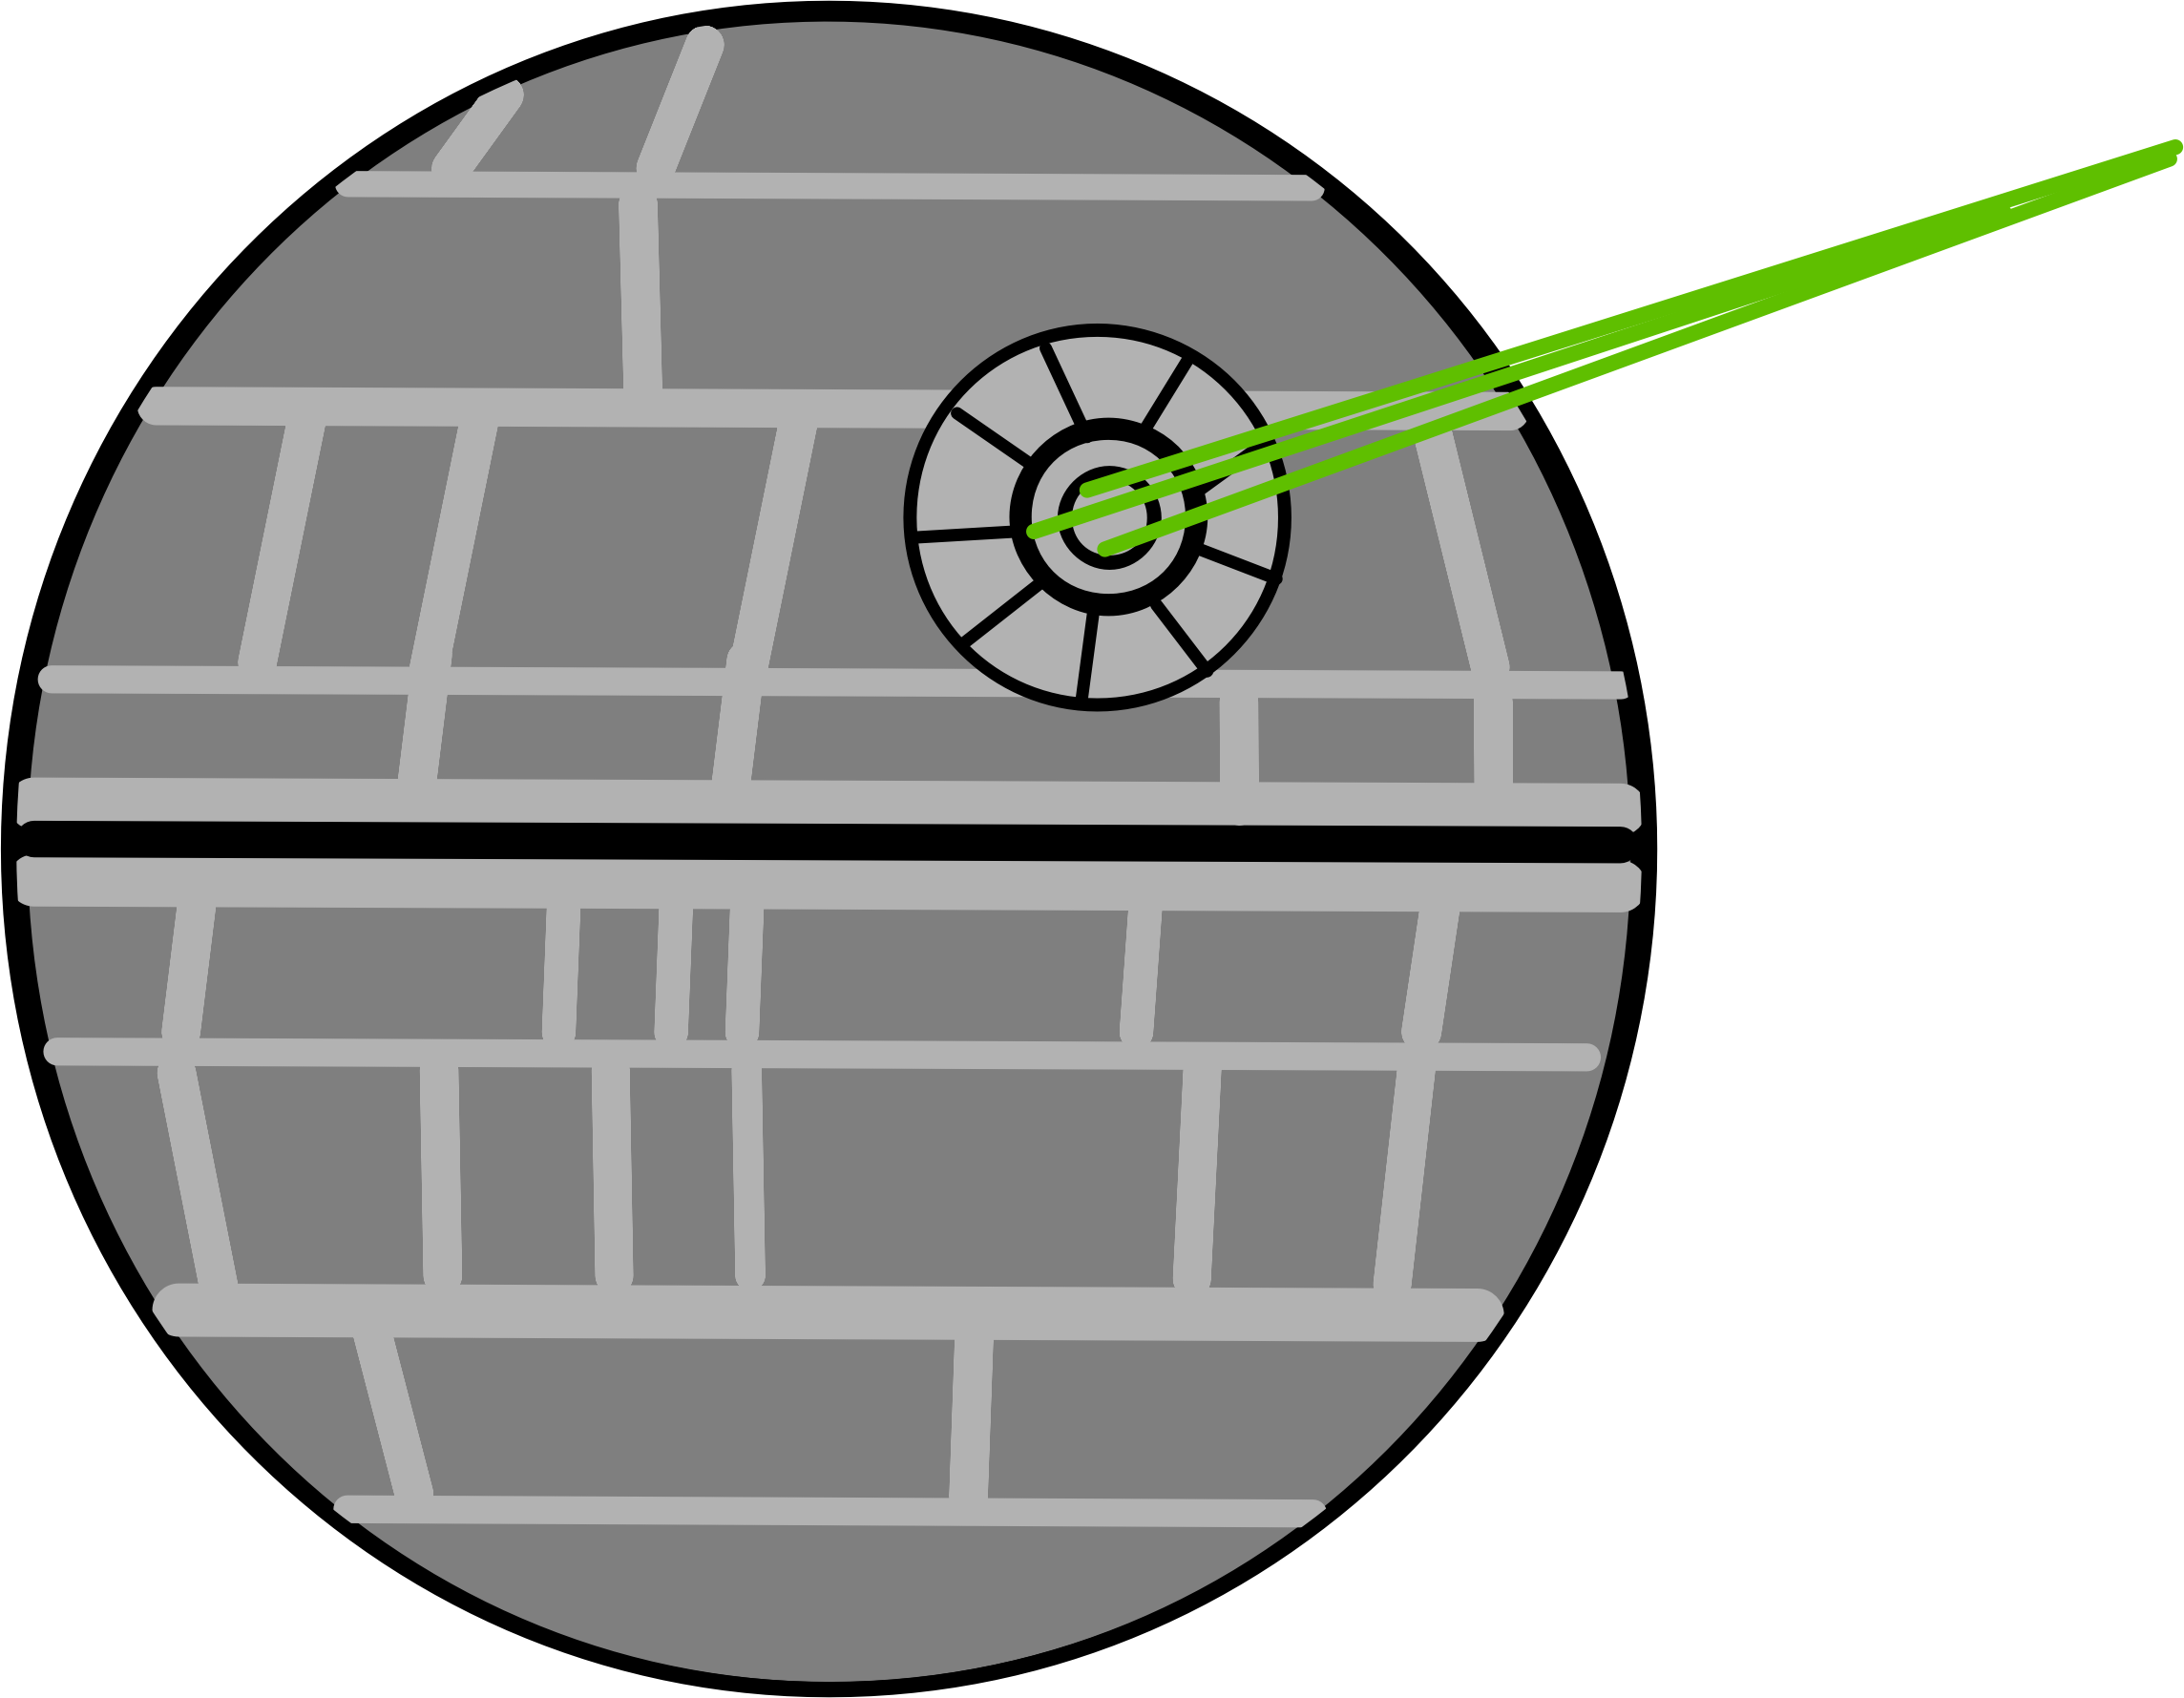 starwars death star clipart #11